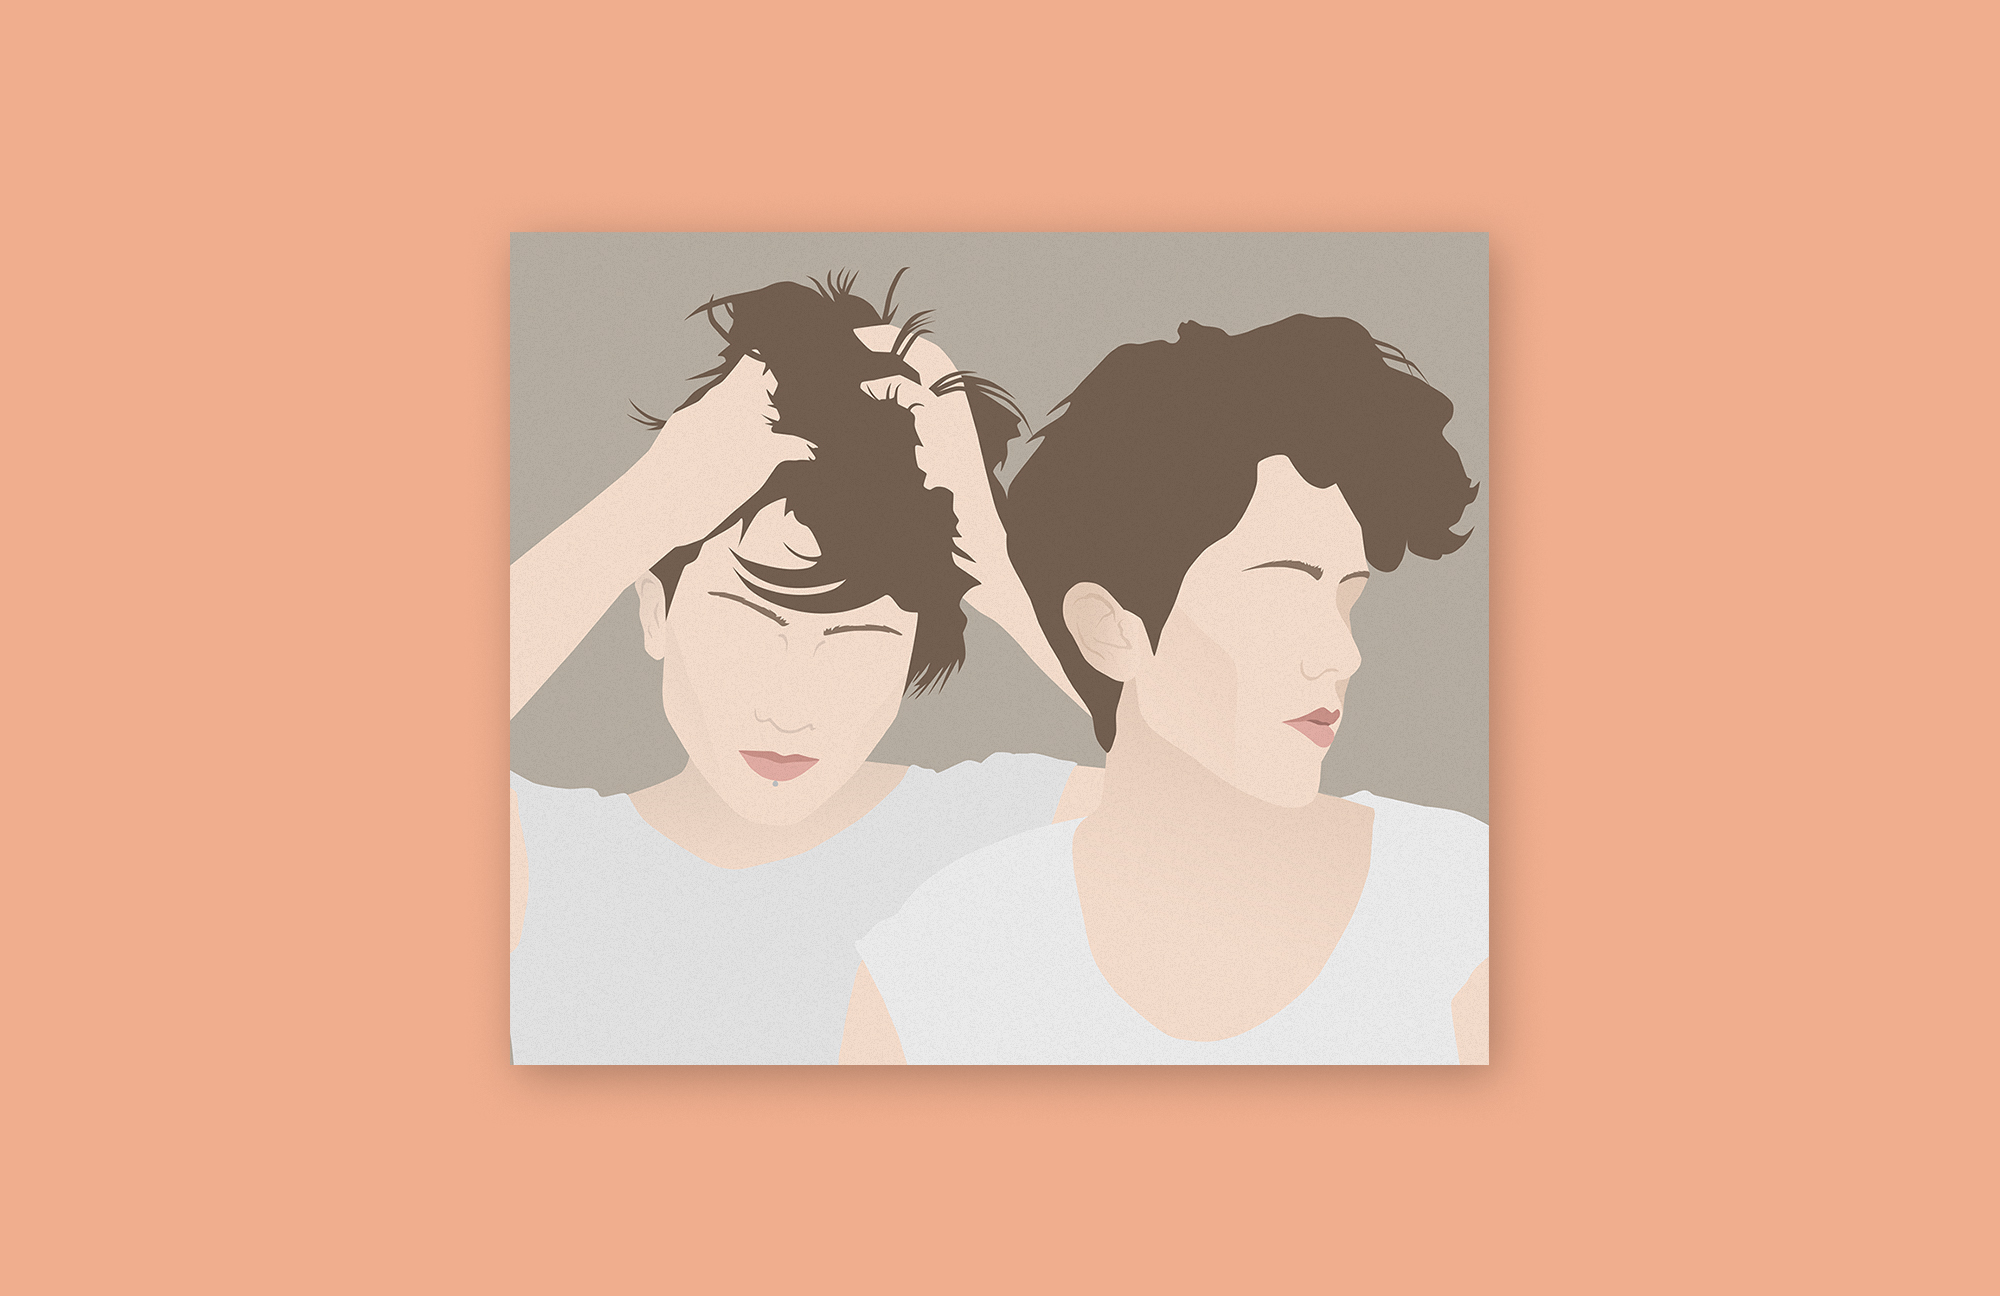 A vector illustration of the musicians Tegan and Sara over a salmon-colored background. The illustration itself is mainly shades of brown and peach, and the two faces do not include eyes.